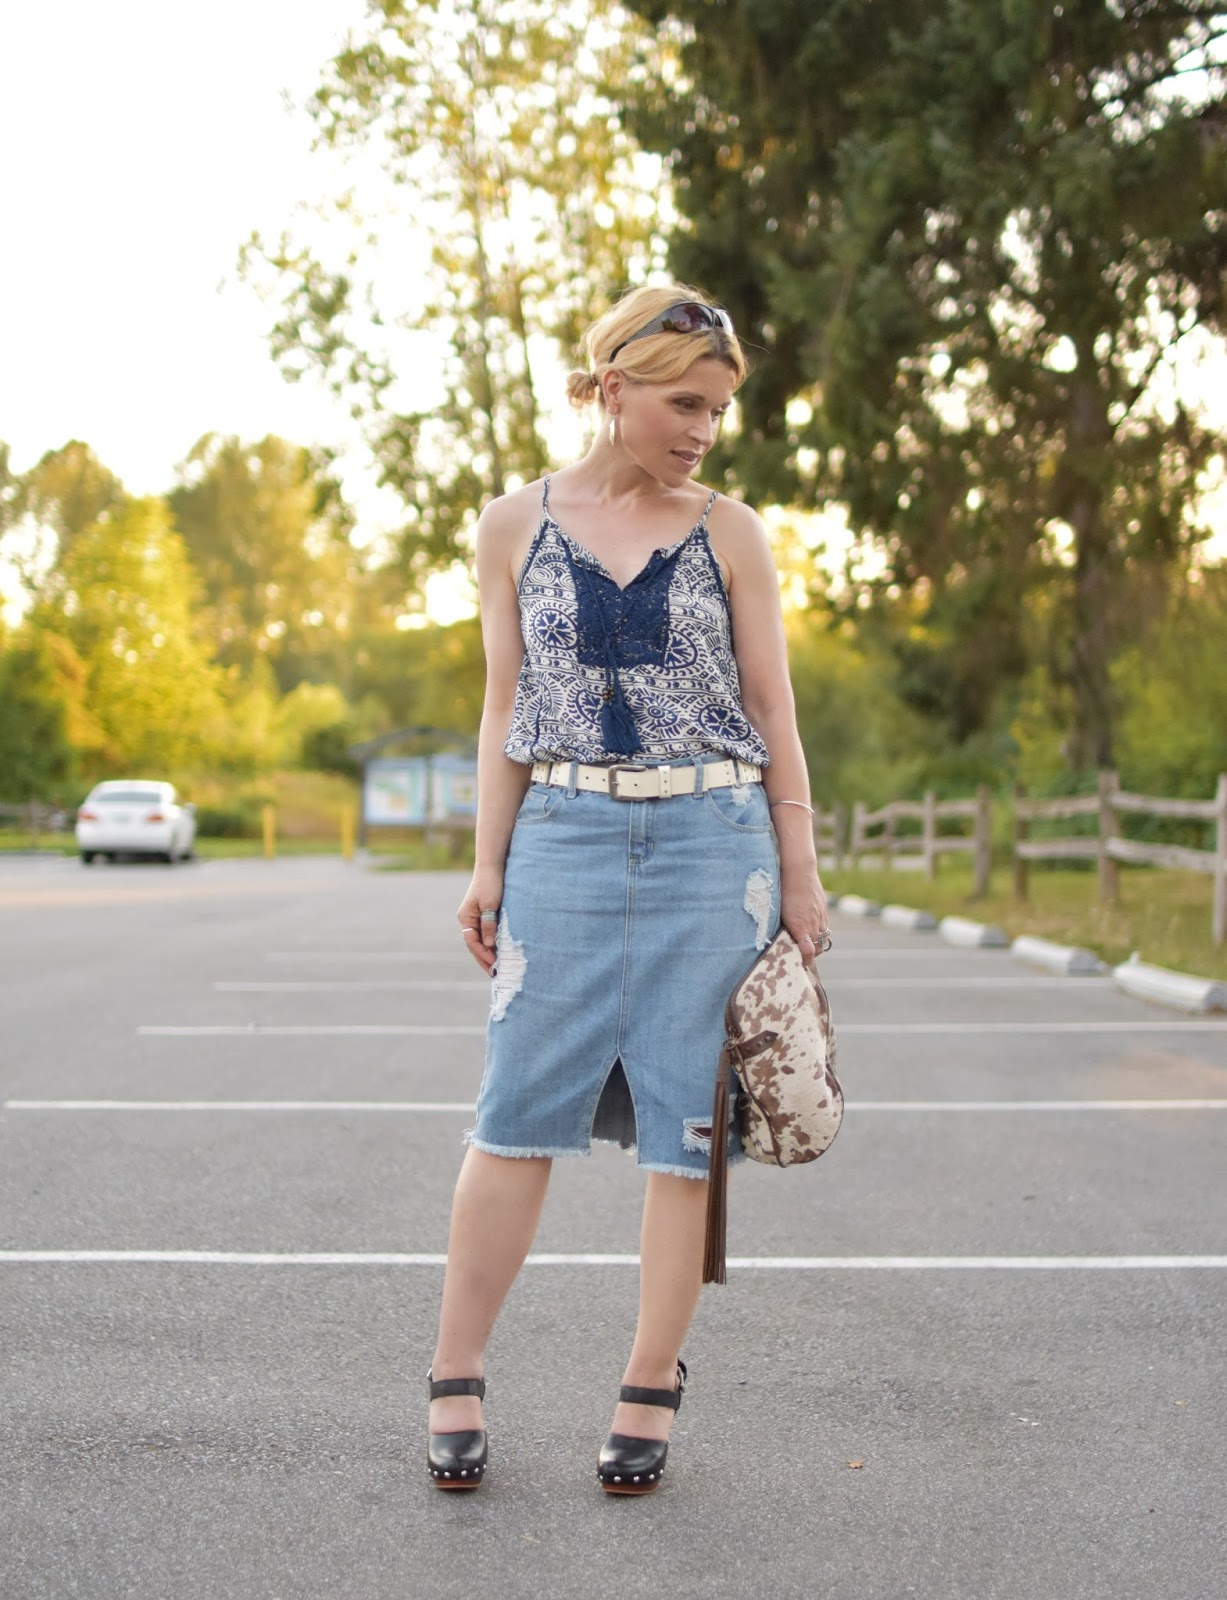 Monika Faulkner styles a distressed denim midi-skirt with a peasant tank top, Vince Camuto heels, and pony-hair bag